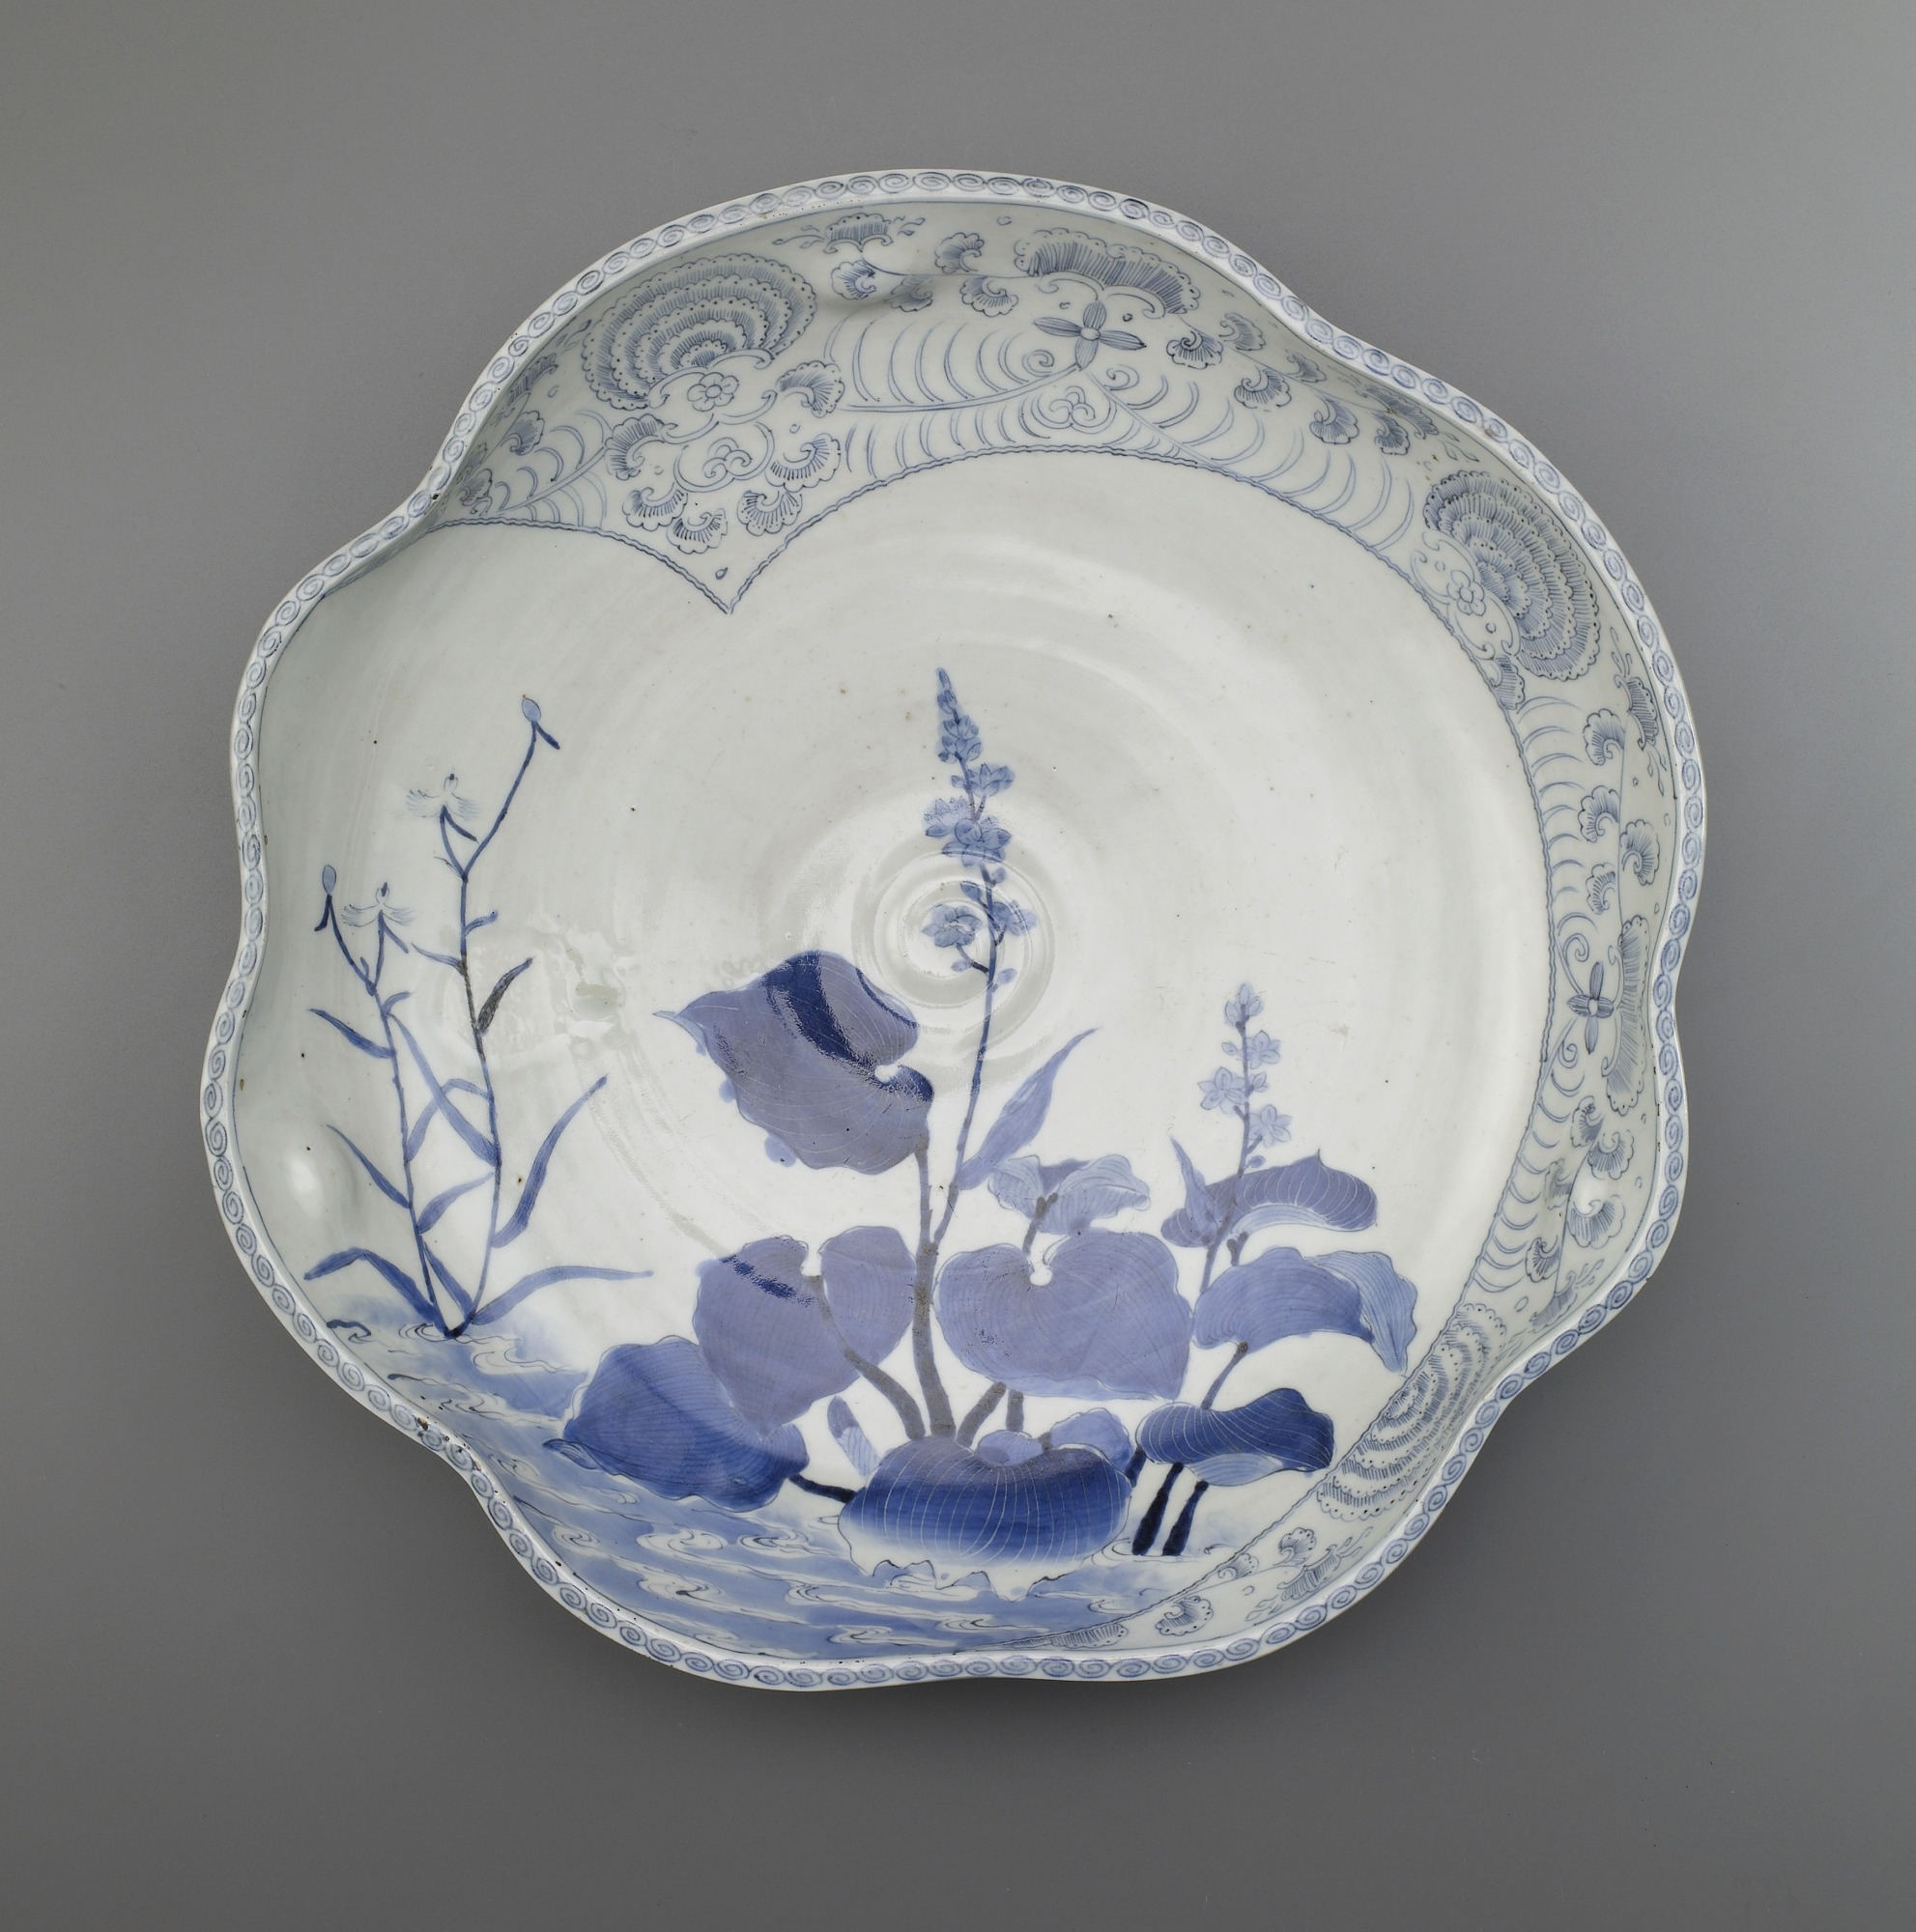 Dish with design of mizuaoi and heron grass in stream